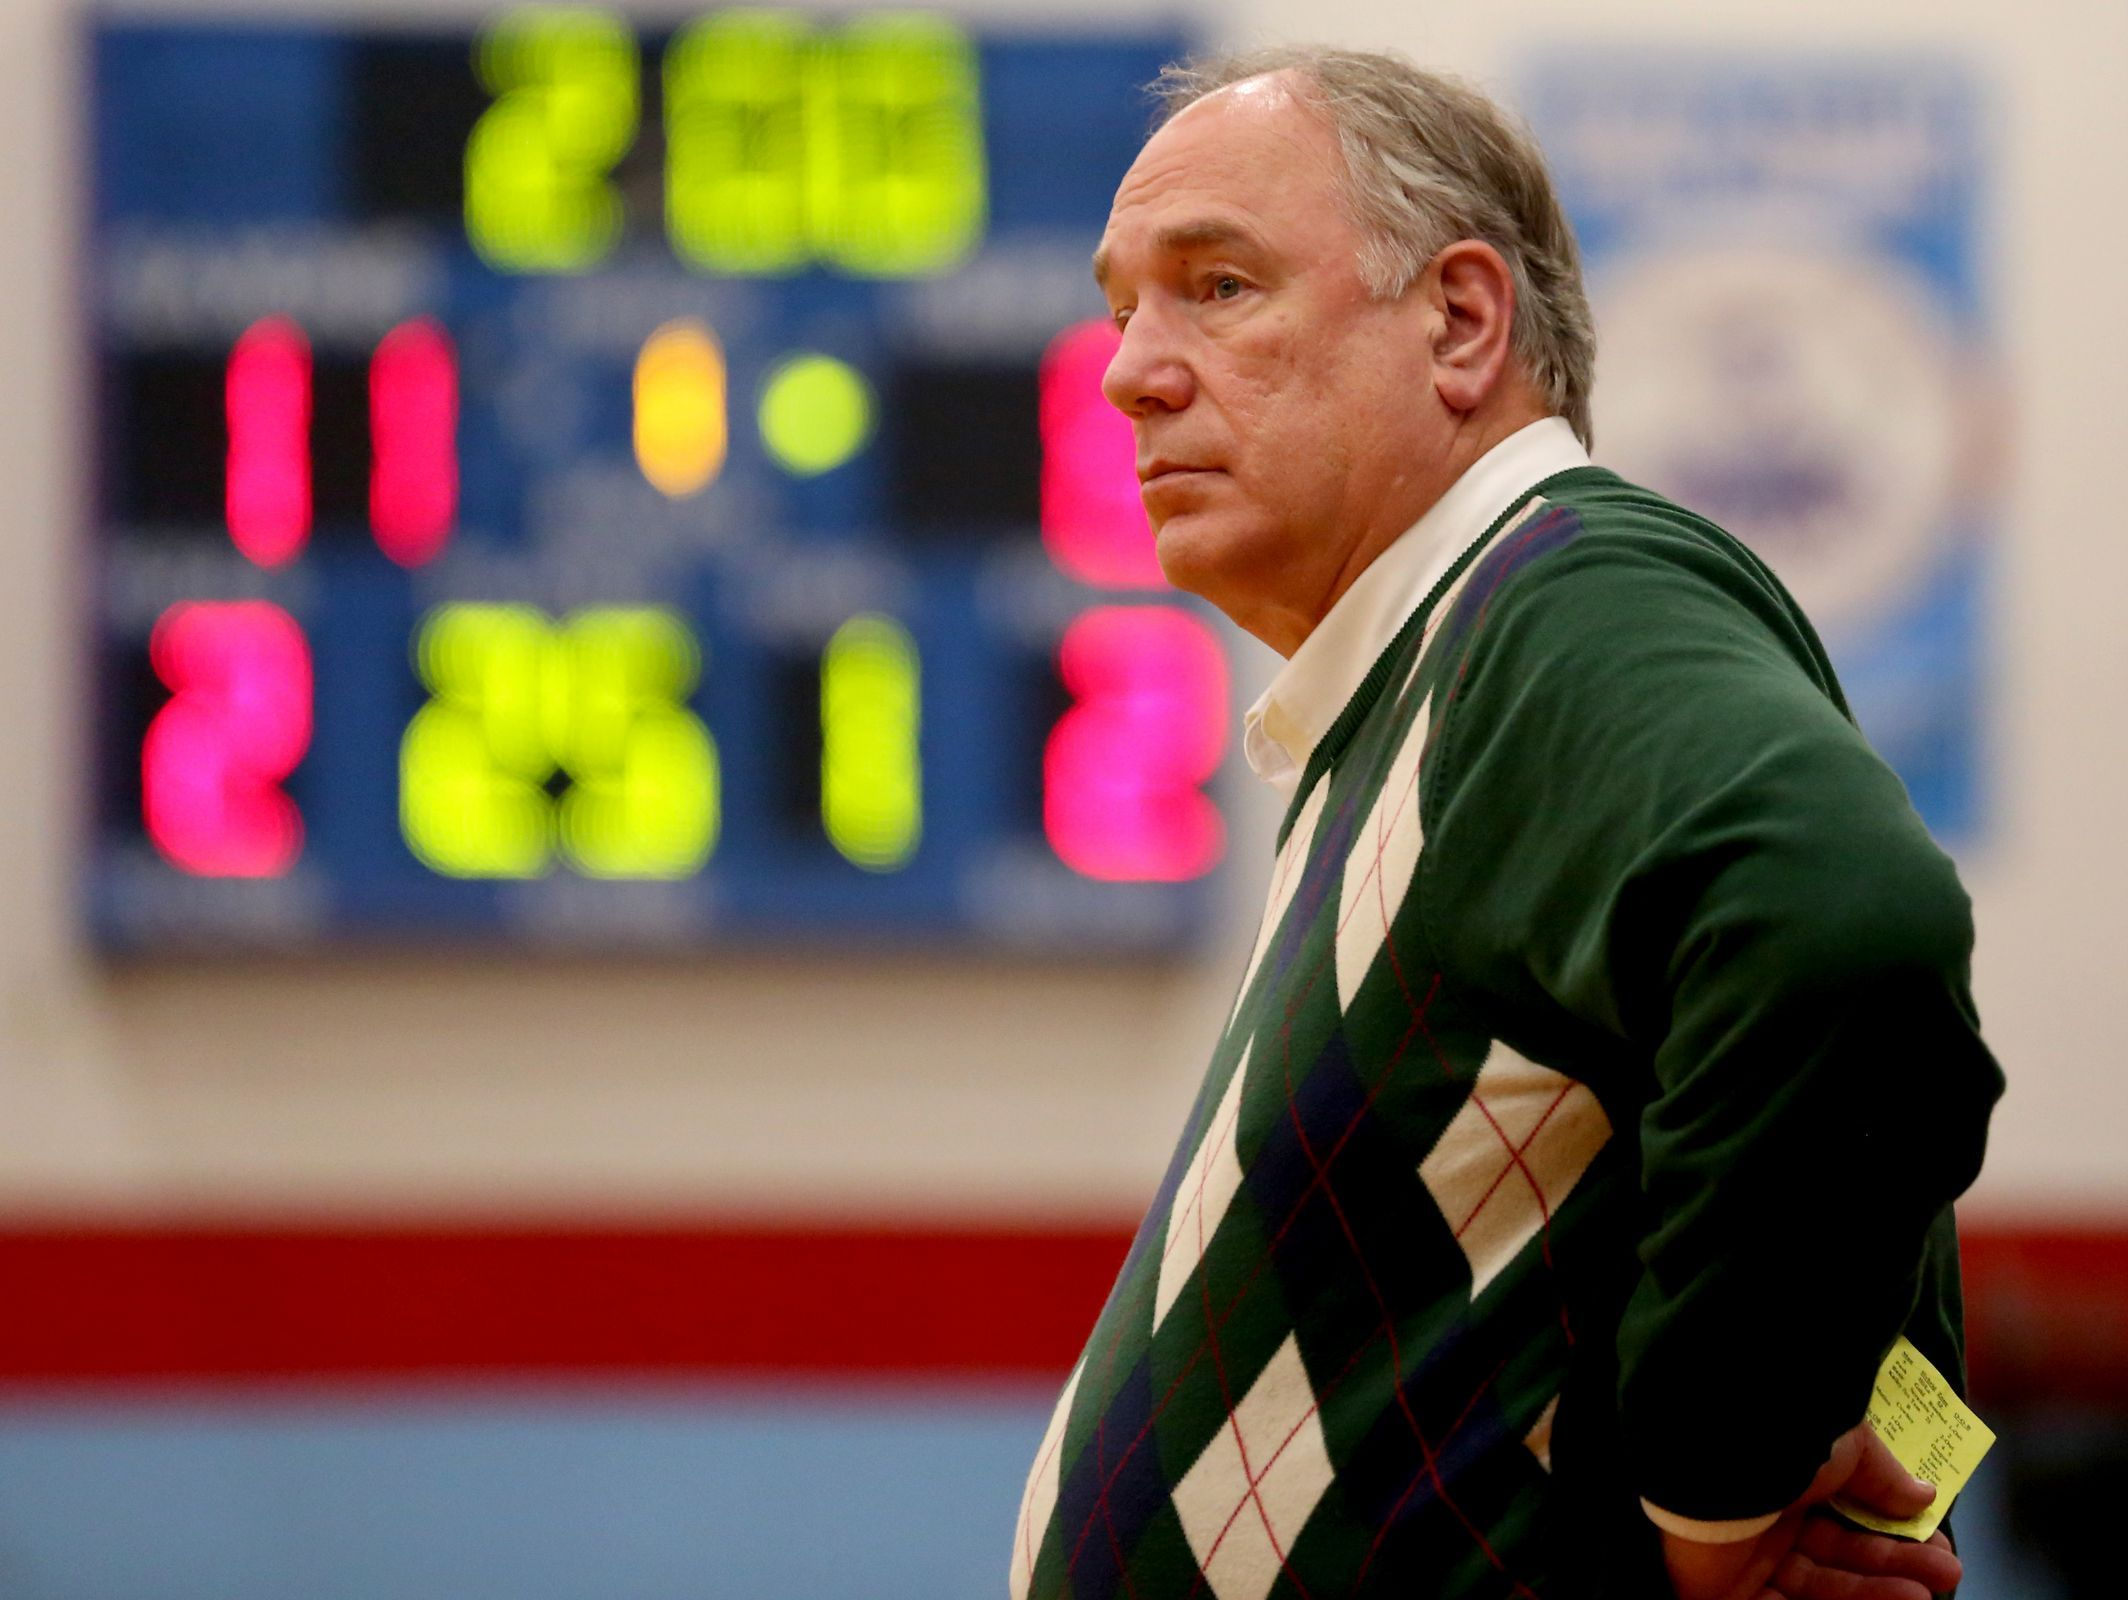 West Salem head coach Terry Williams watches his team play in the West Salem vs. South Salem girl's basketball game at South Salem High School on Tuesday, Jan. 26, 2016. South Salem won the game 62-45.